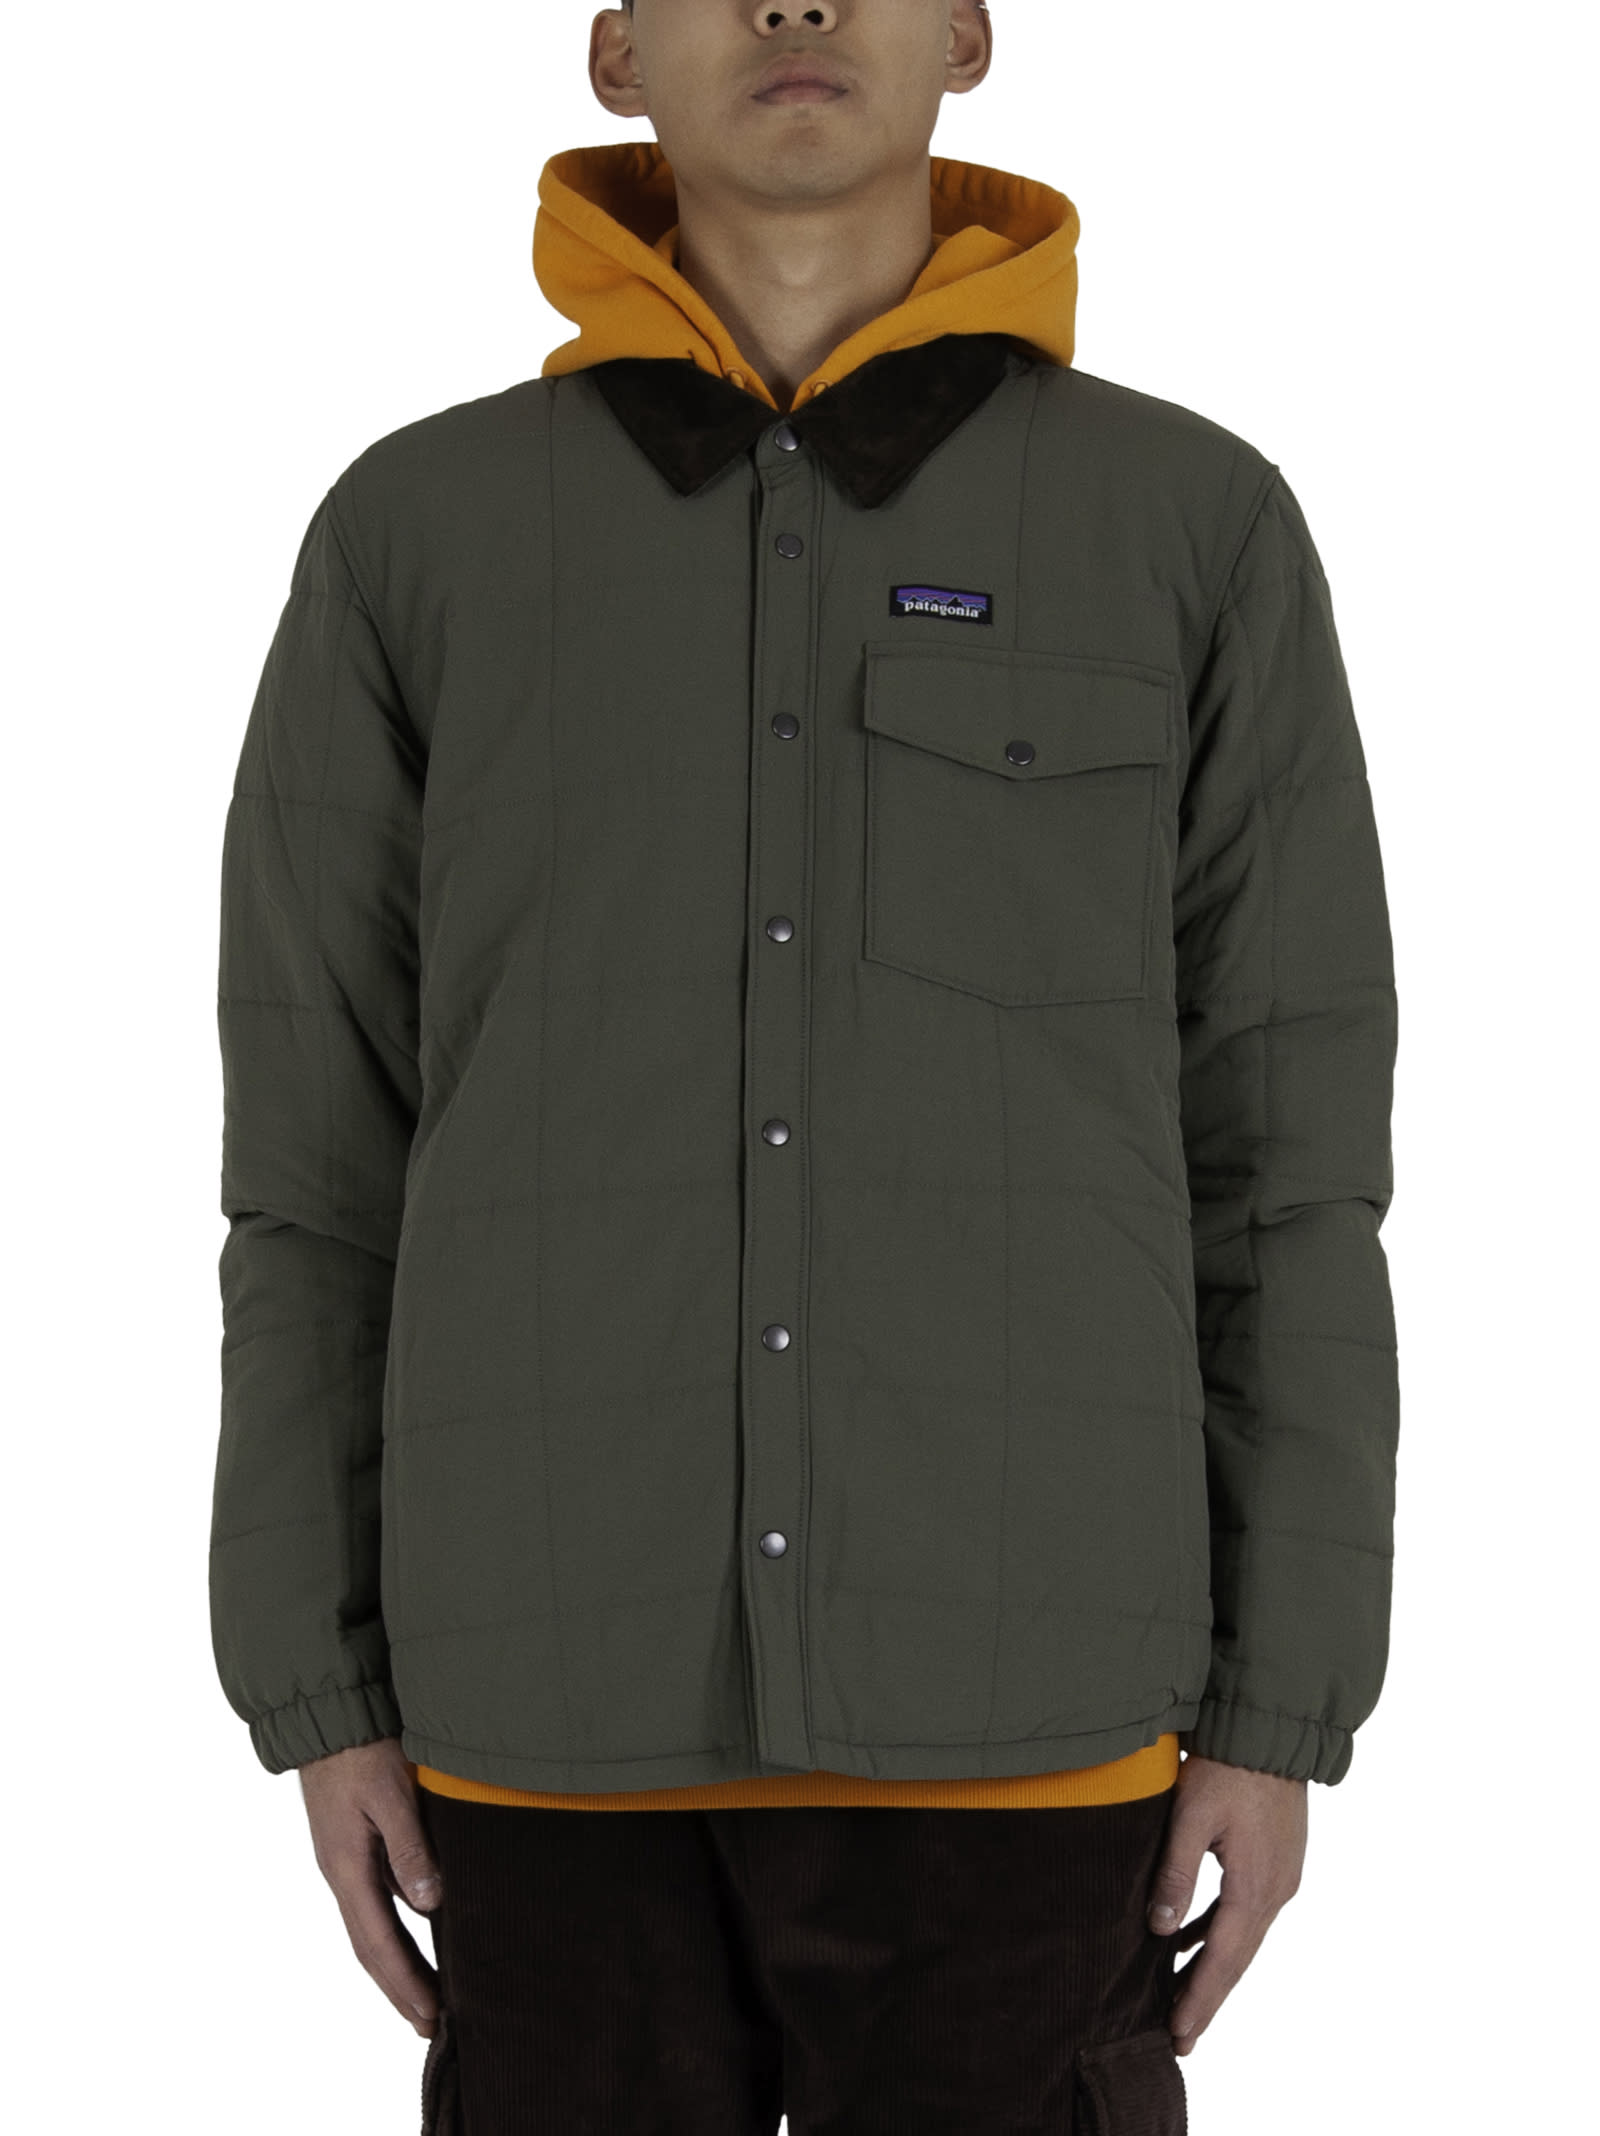 Shirt jacket; - Button closure; - Chest pocket with button closure; - Logoed insert applied on the chest; - Fleece interior with pocket, velvet collar. - Composition: 100% Polyester (92% Recycled) - Color: Green